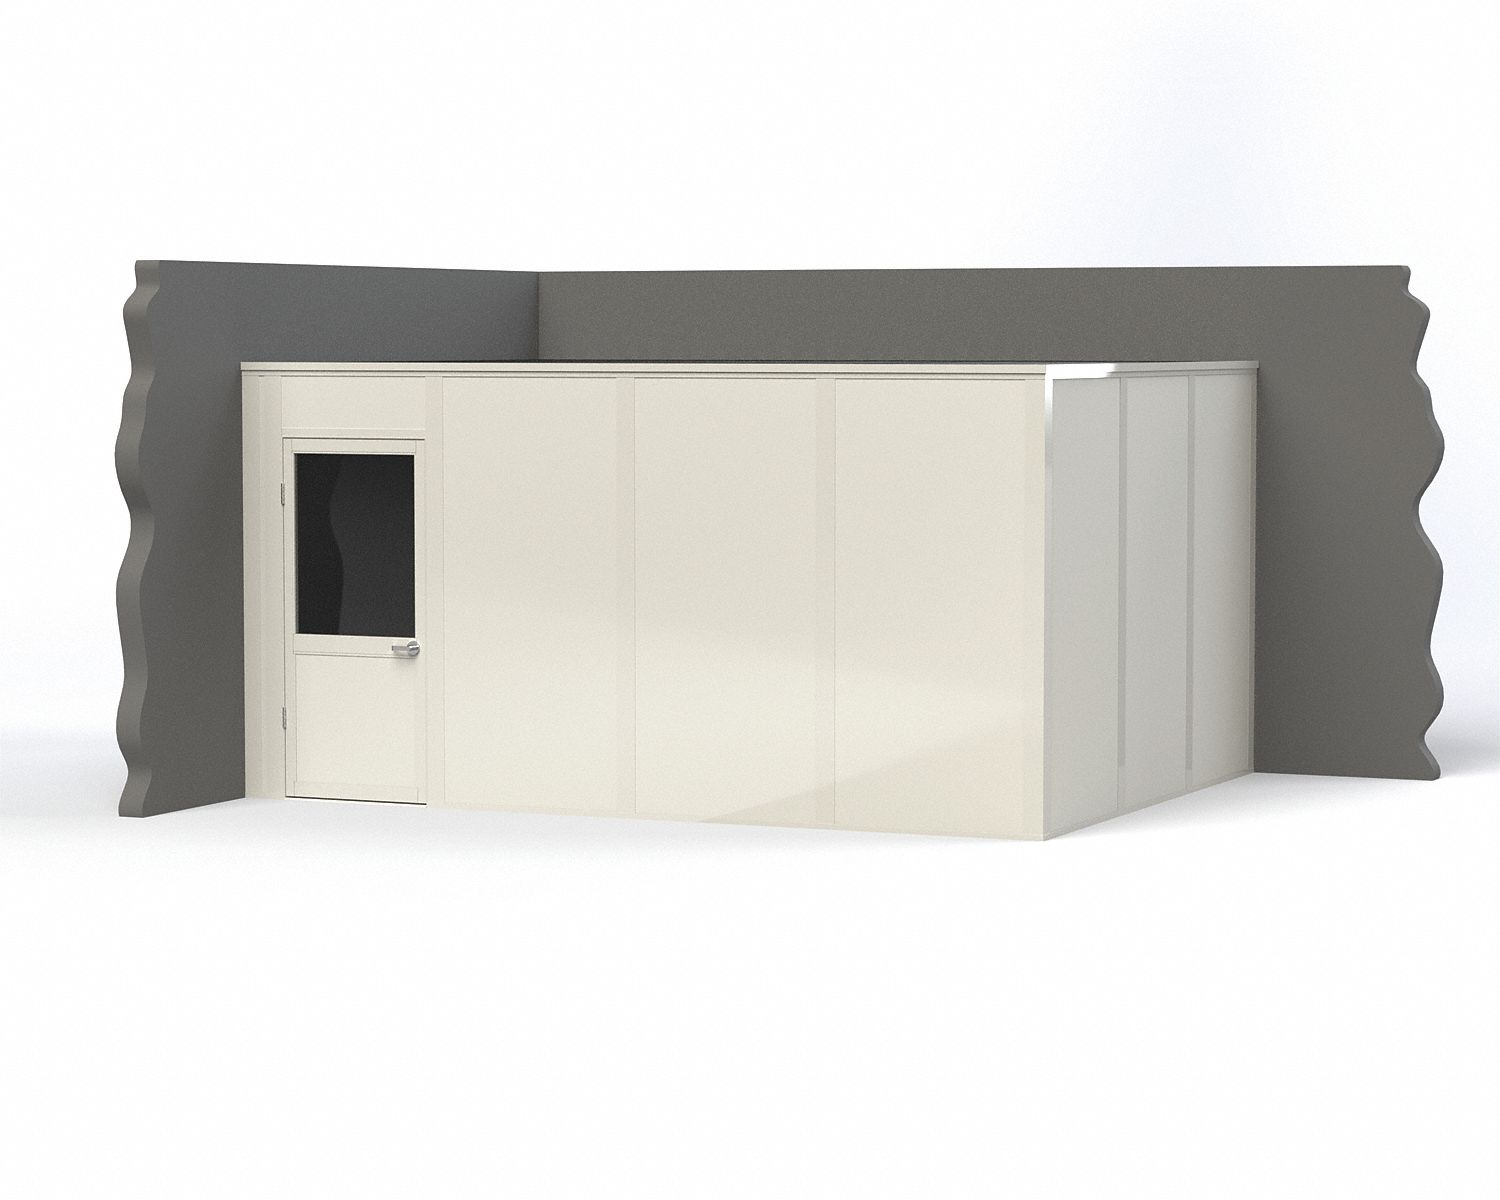 Modular In-Plant Office,  2-Wall,  16 ft. Width,  12 ft. Depth,  8 ft. Height